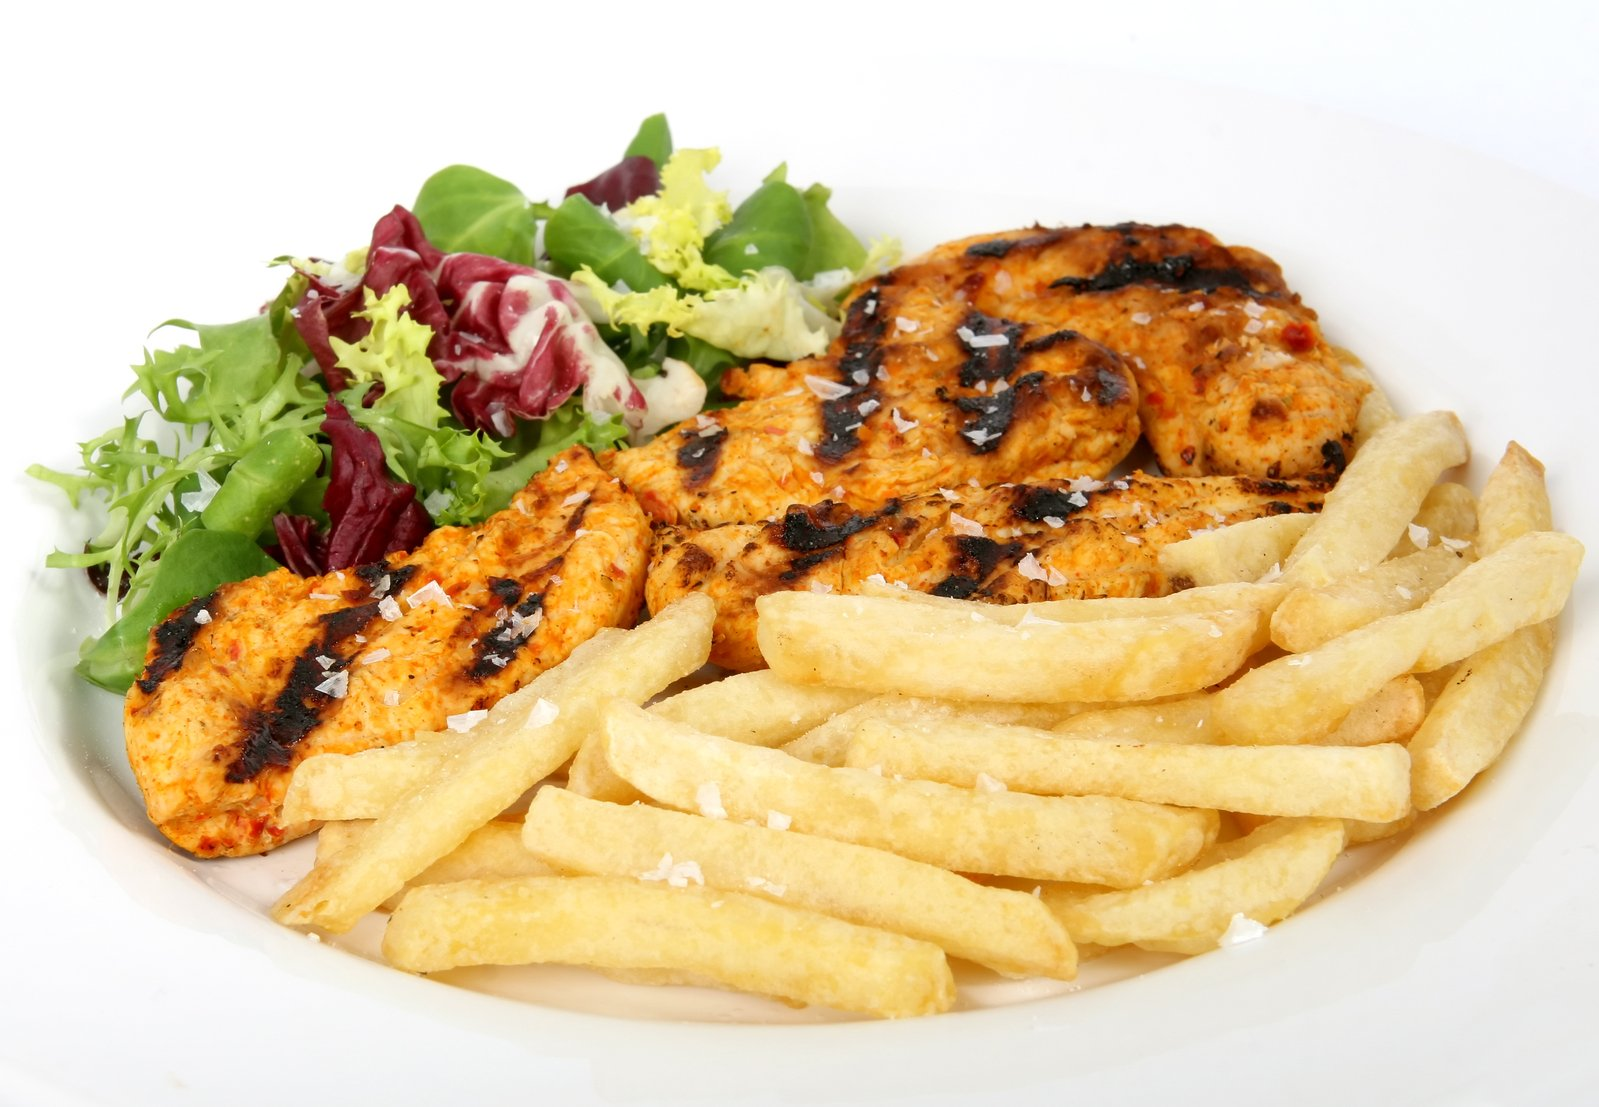 free summer barbeque chicken with salad and french fries stock photo